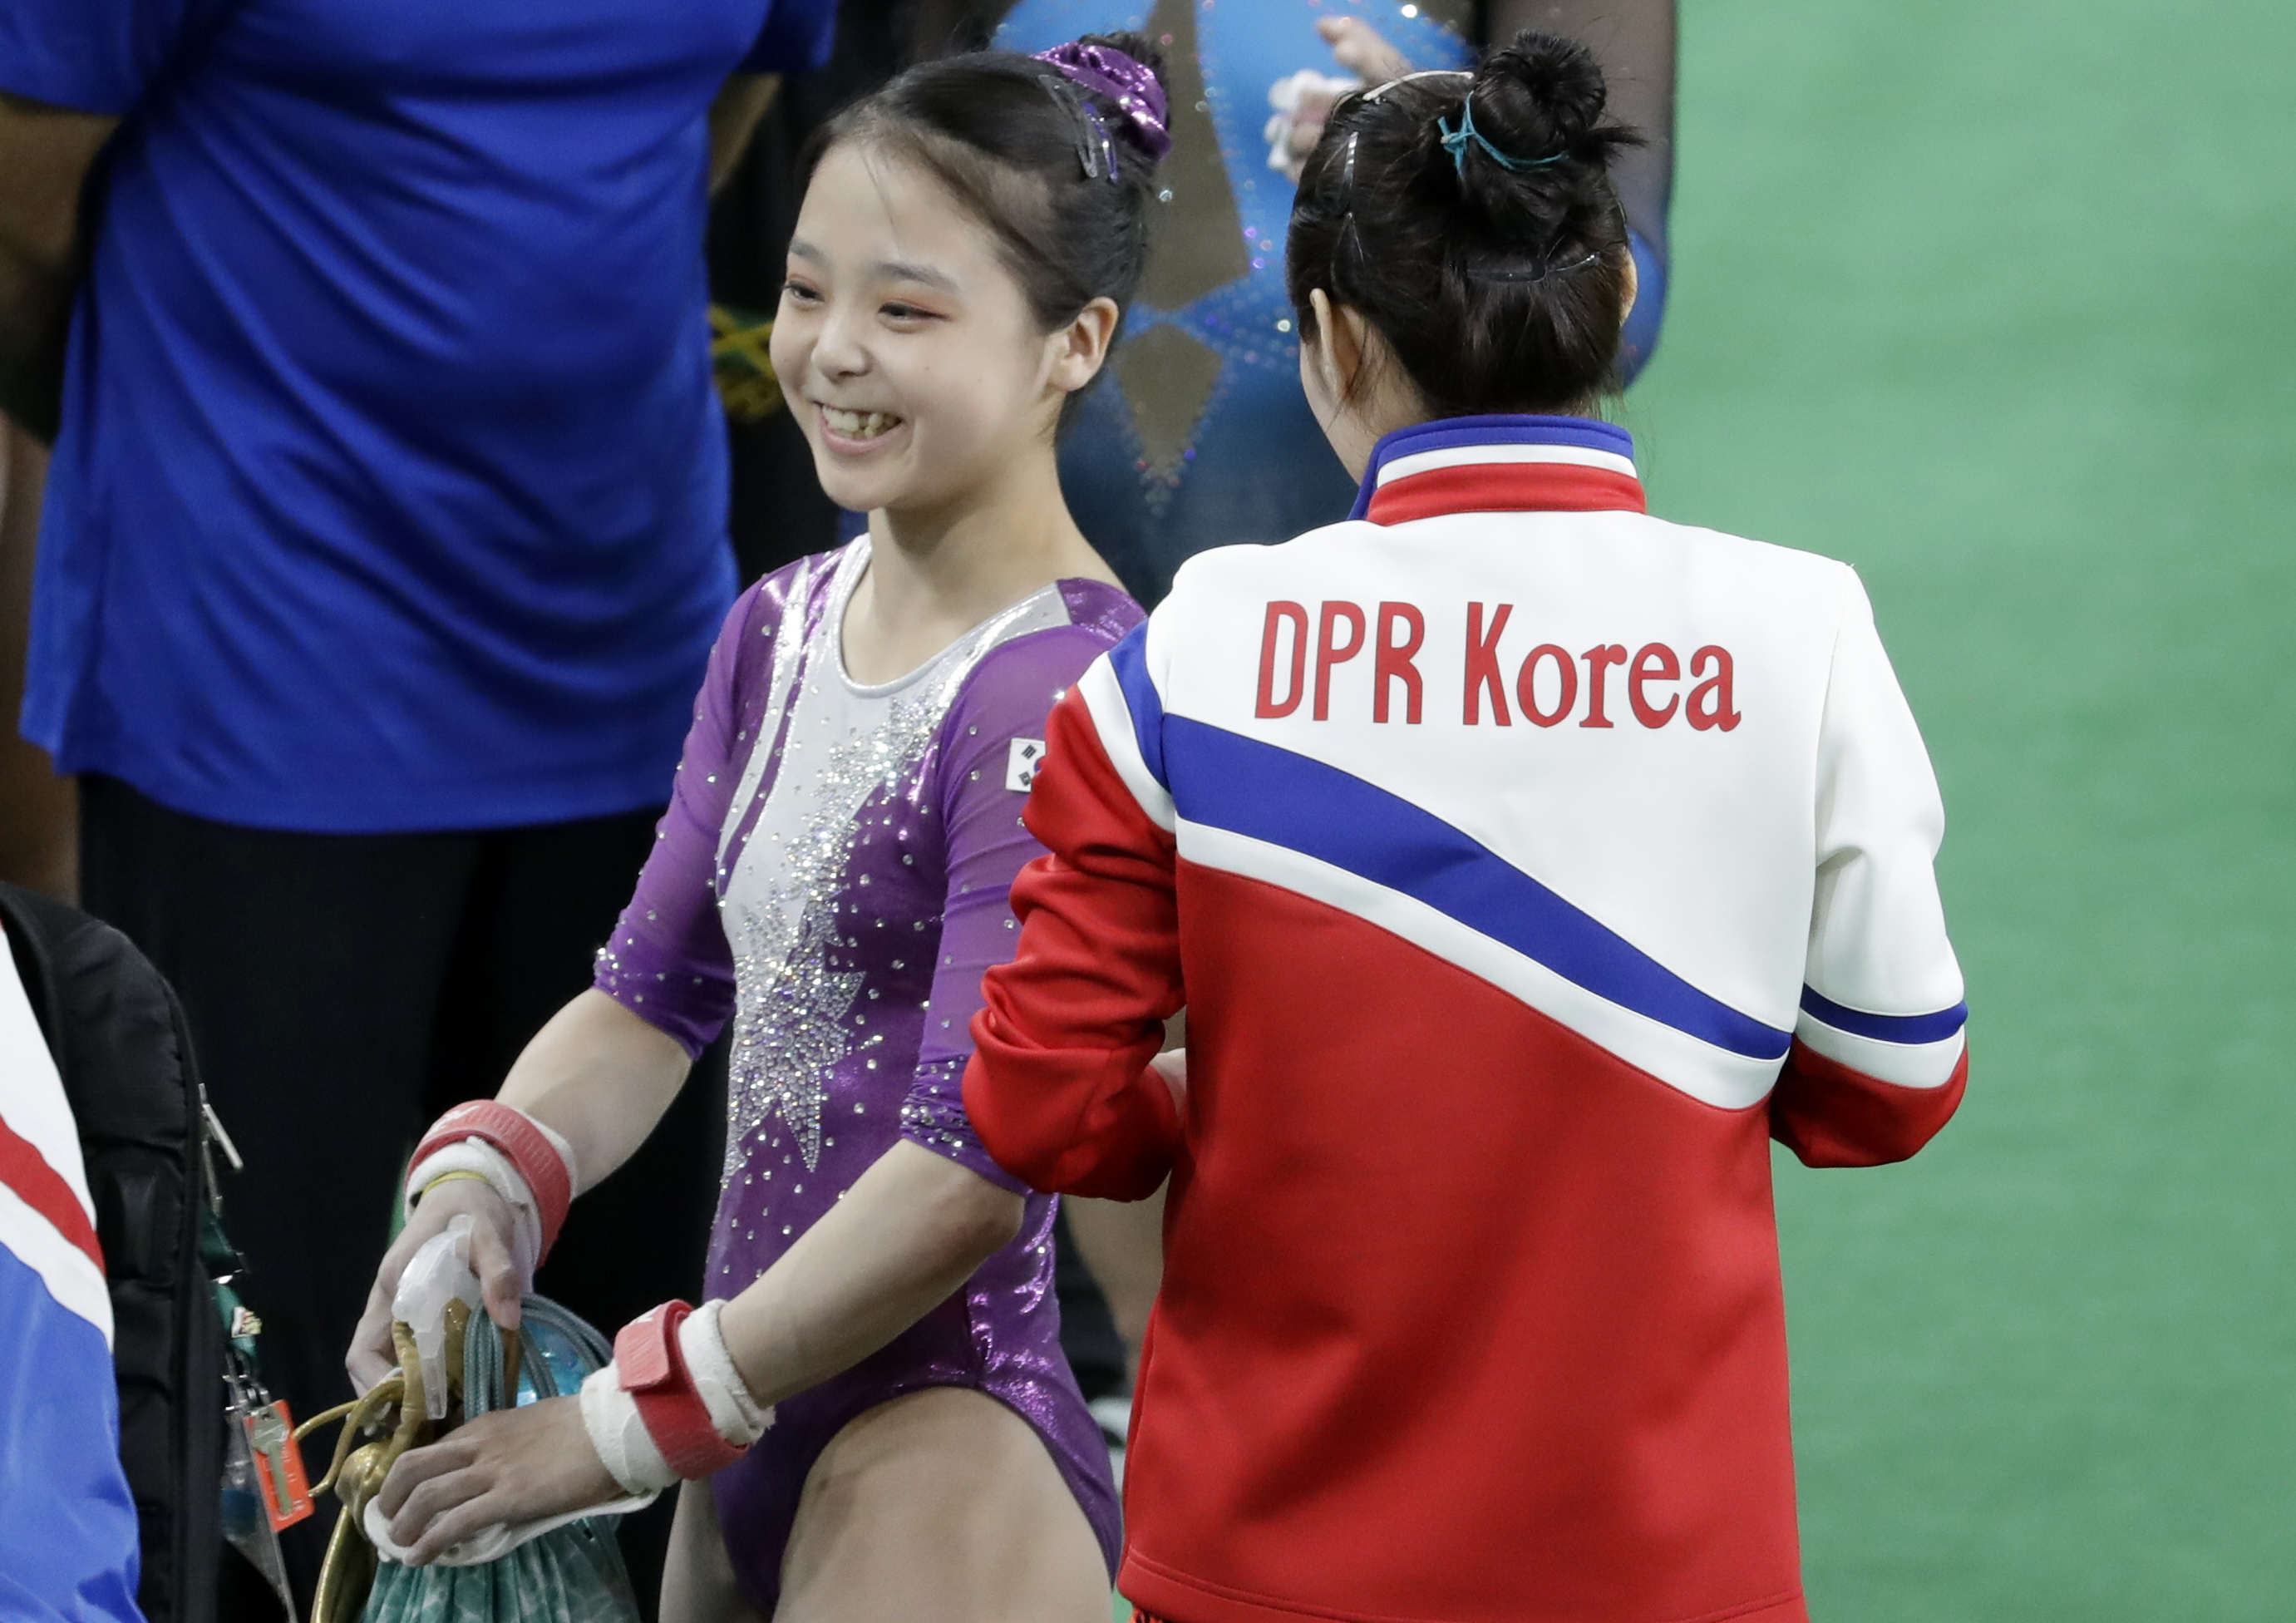 Olympics Brings North And South Korean Athletes Together For Iconic Selfie PA 28261525